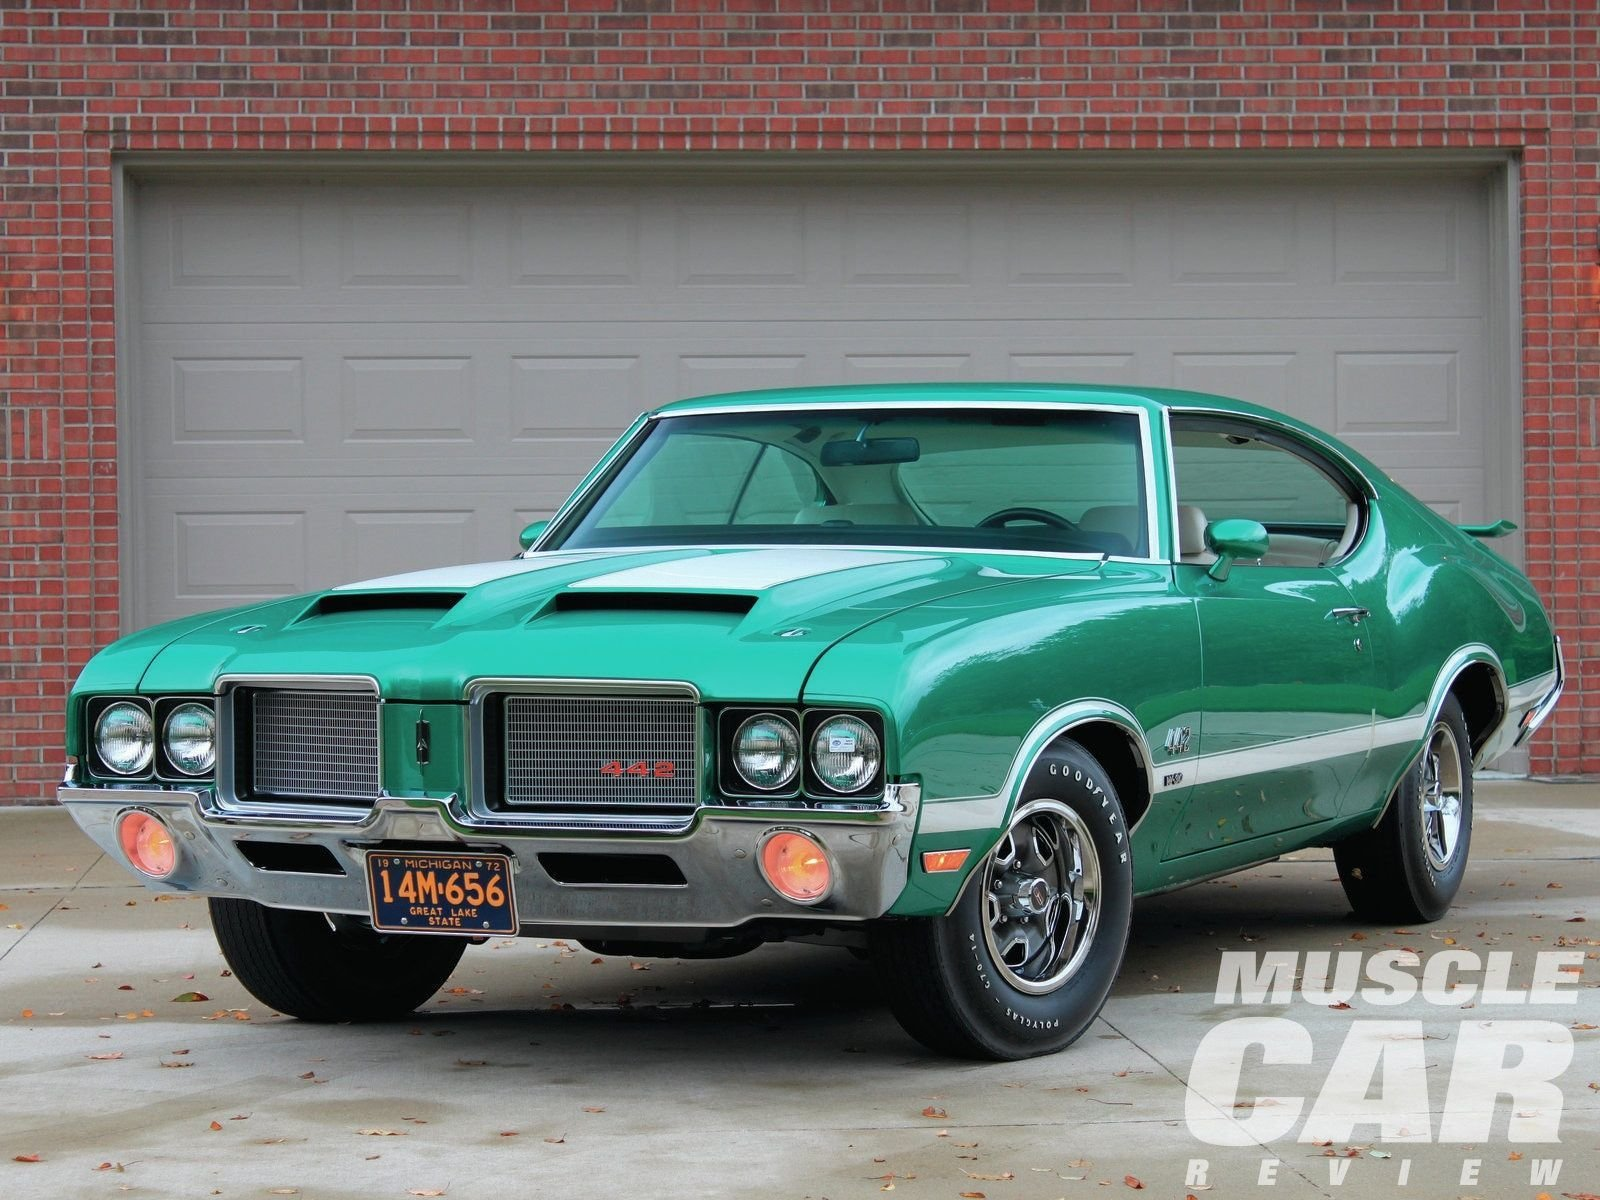 Latest 1972 Oldsmobile Cutlass 442 W30 Muscle Cars Cars Free Download